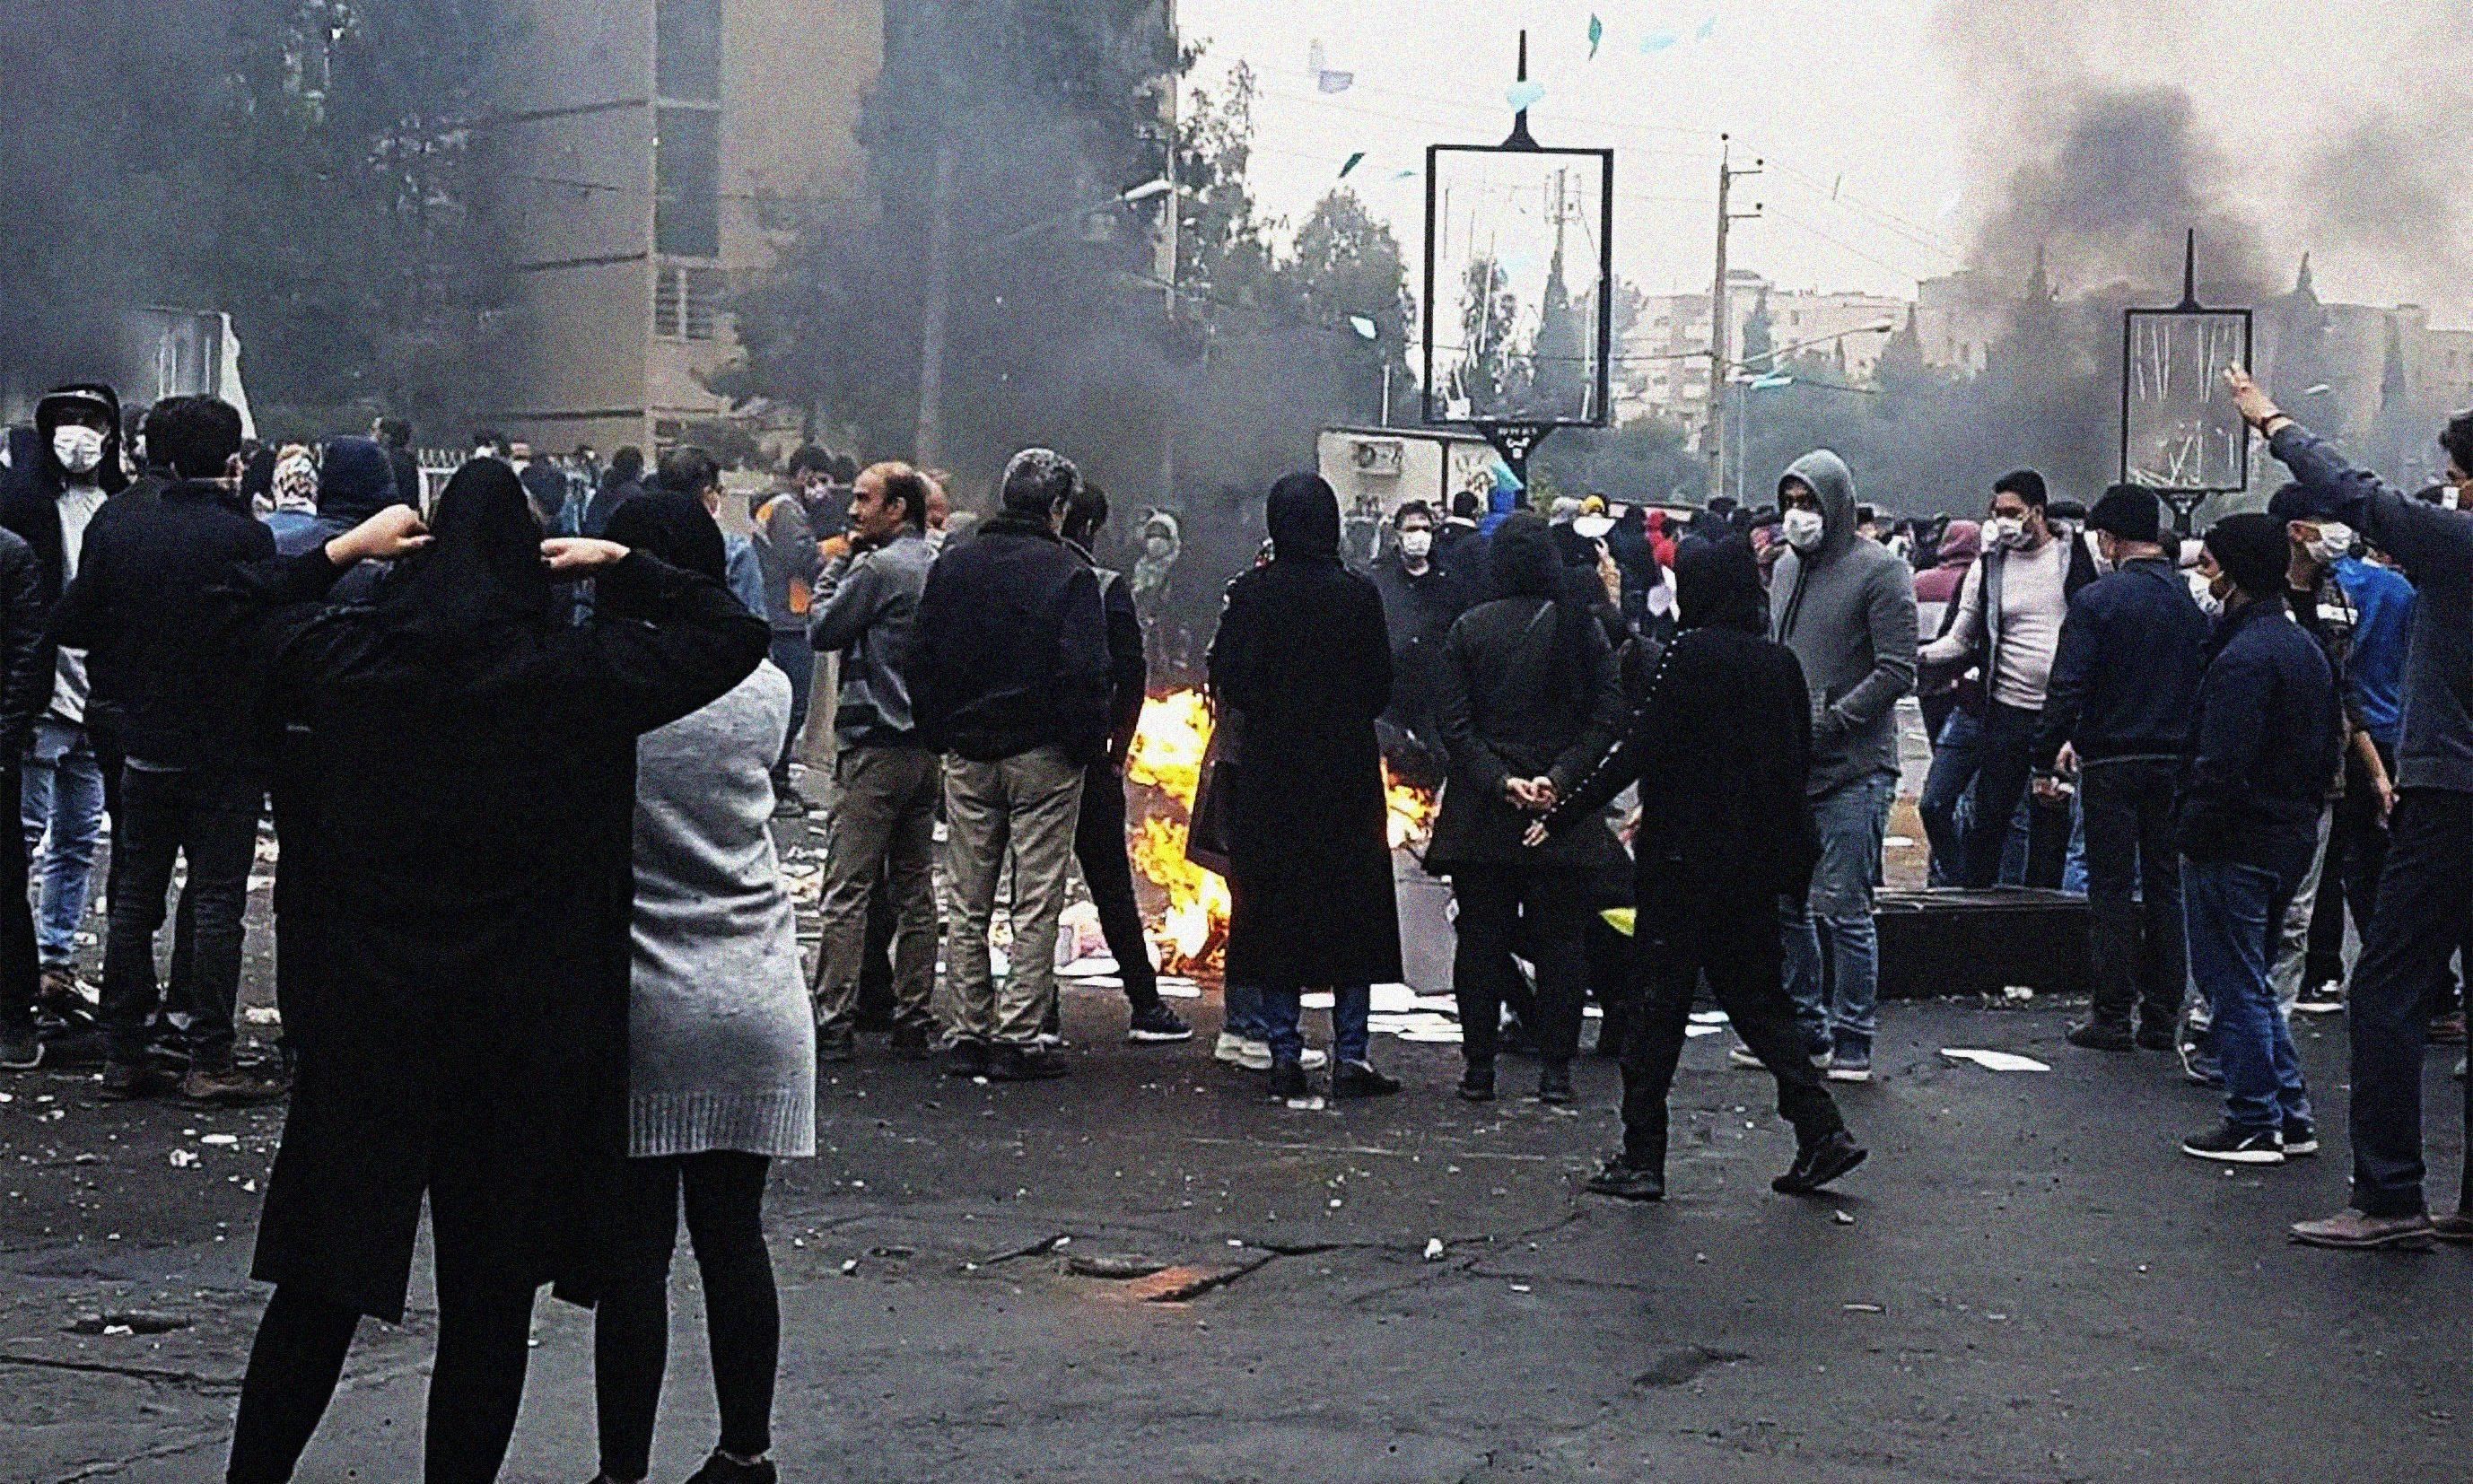 At least 7,000 people reportedly arrested in Iran protests, says UN